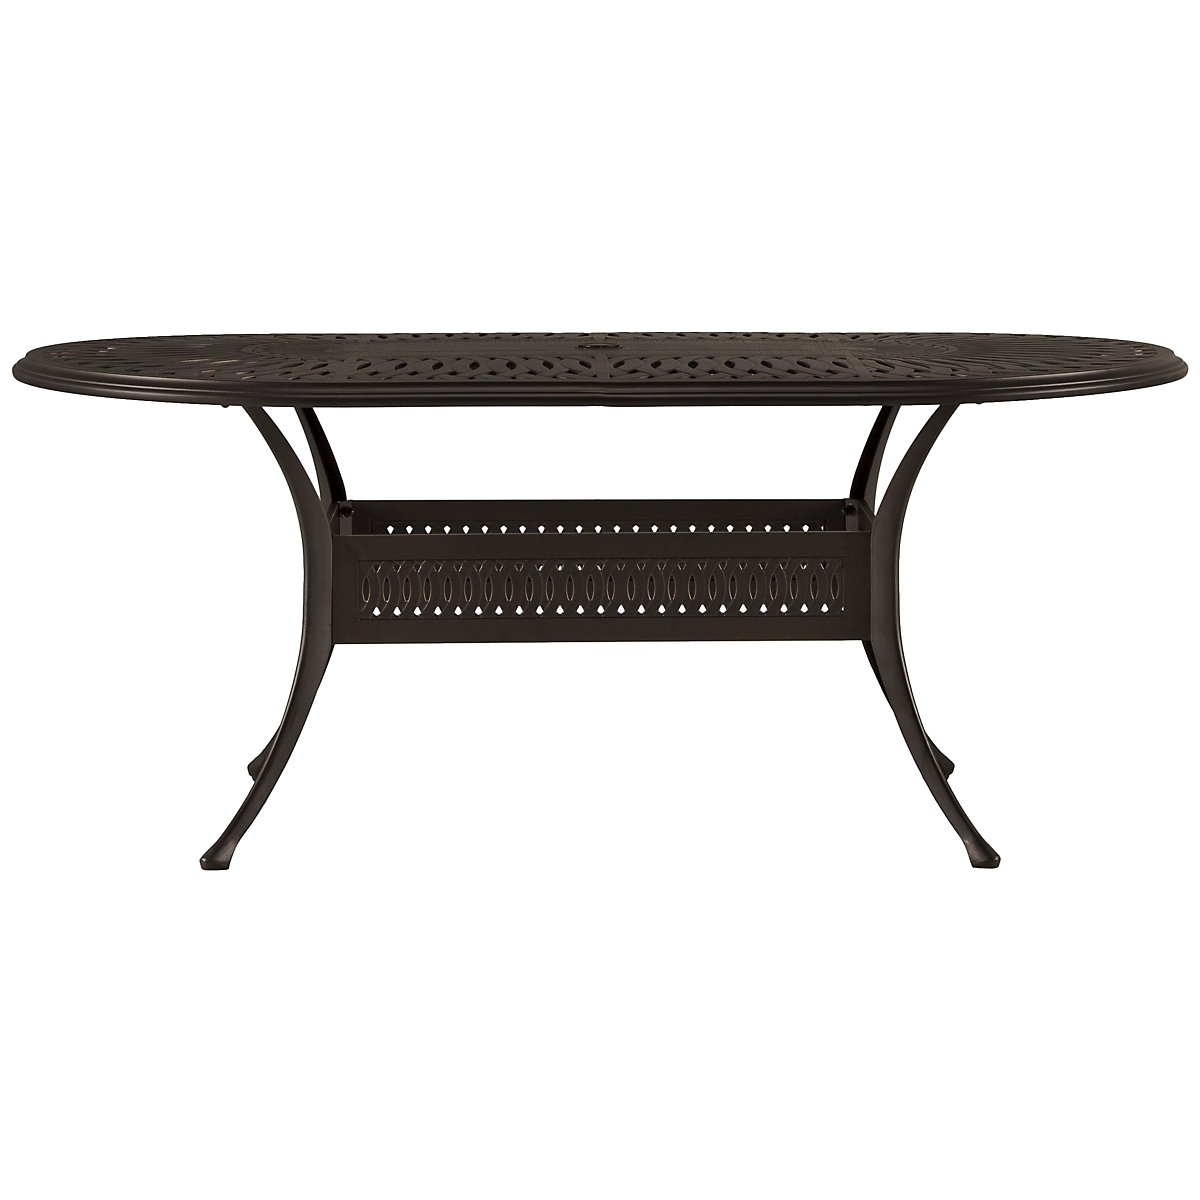 "Primera Dark Tone 72"" Oval Table"